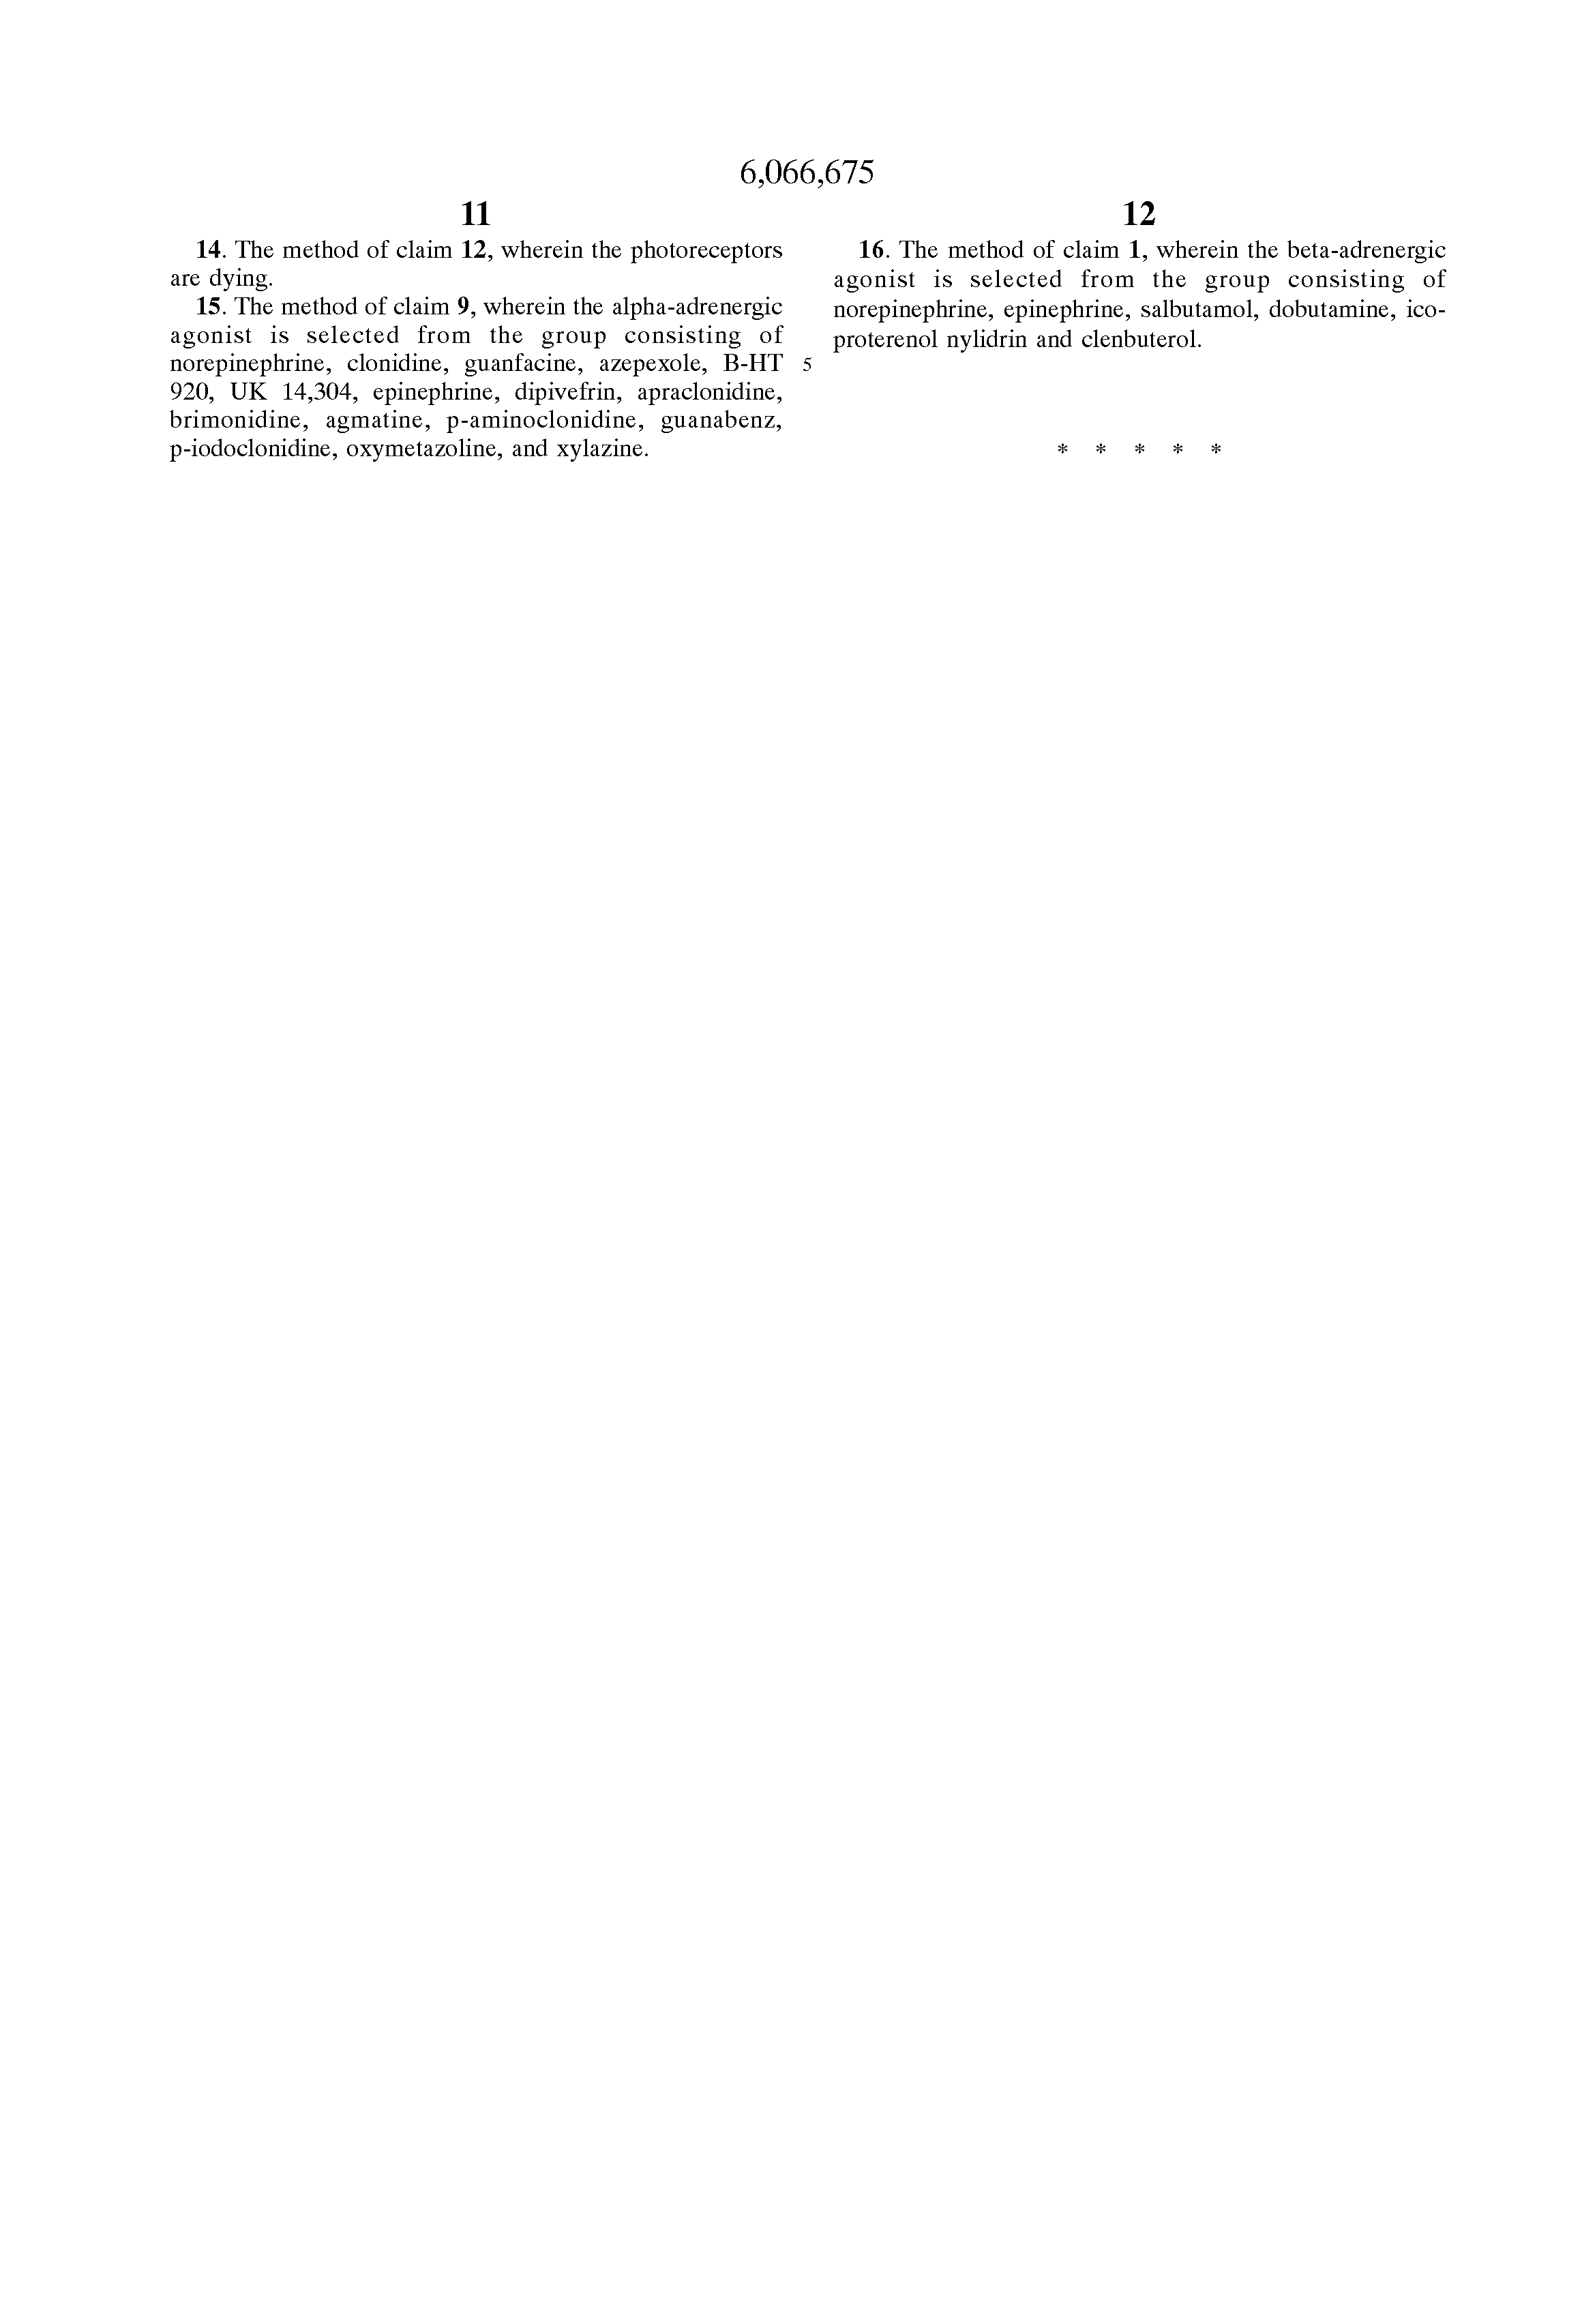 US 6066675 A - Method For Treatment Of Retinal Diseases